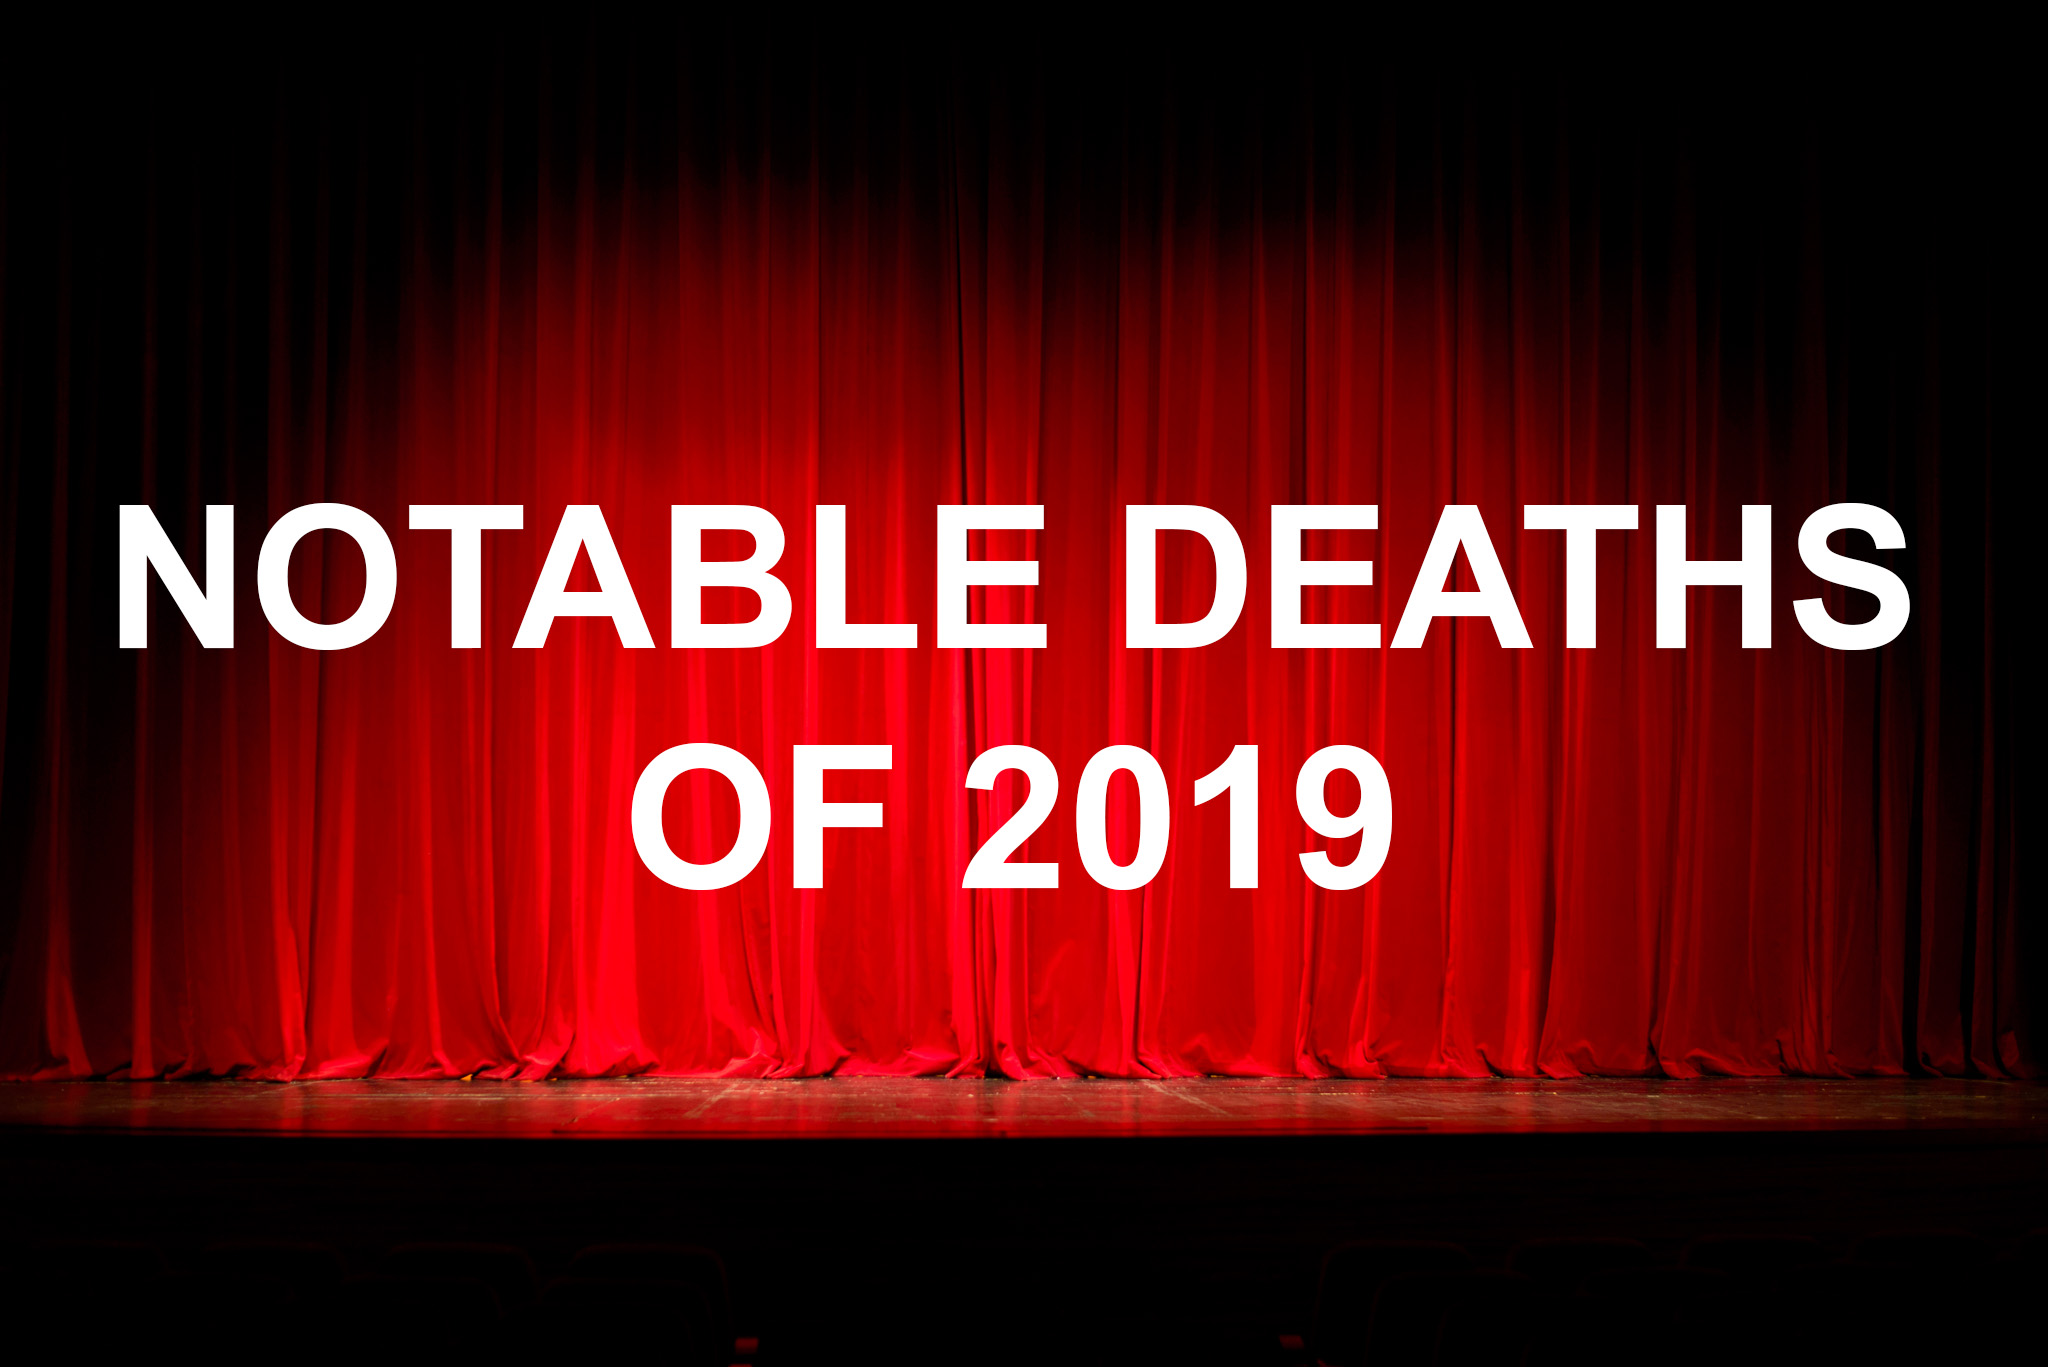 Celebrity deaths 2019 slideshow creator